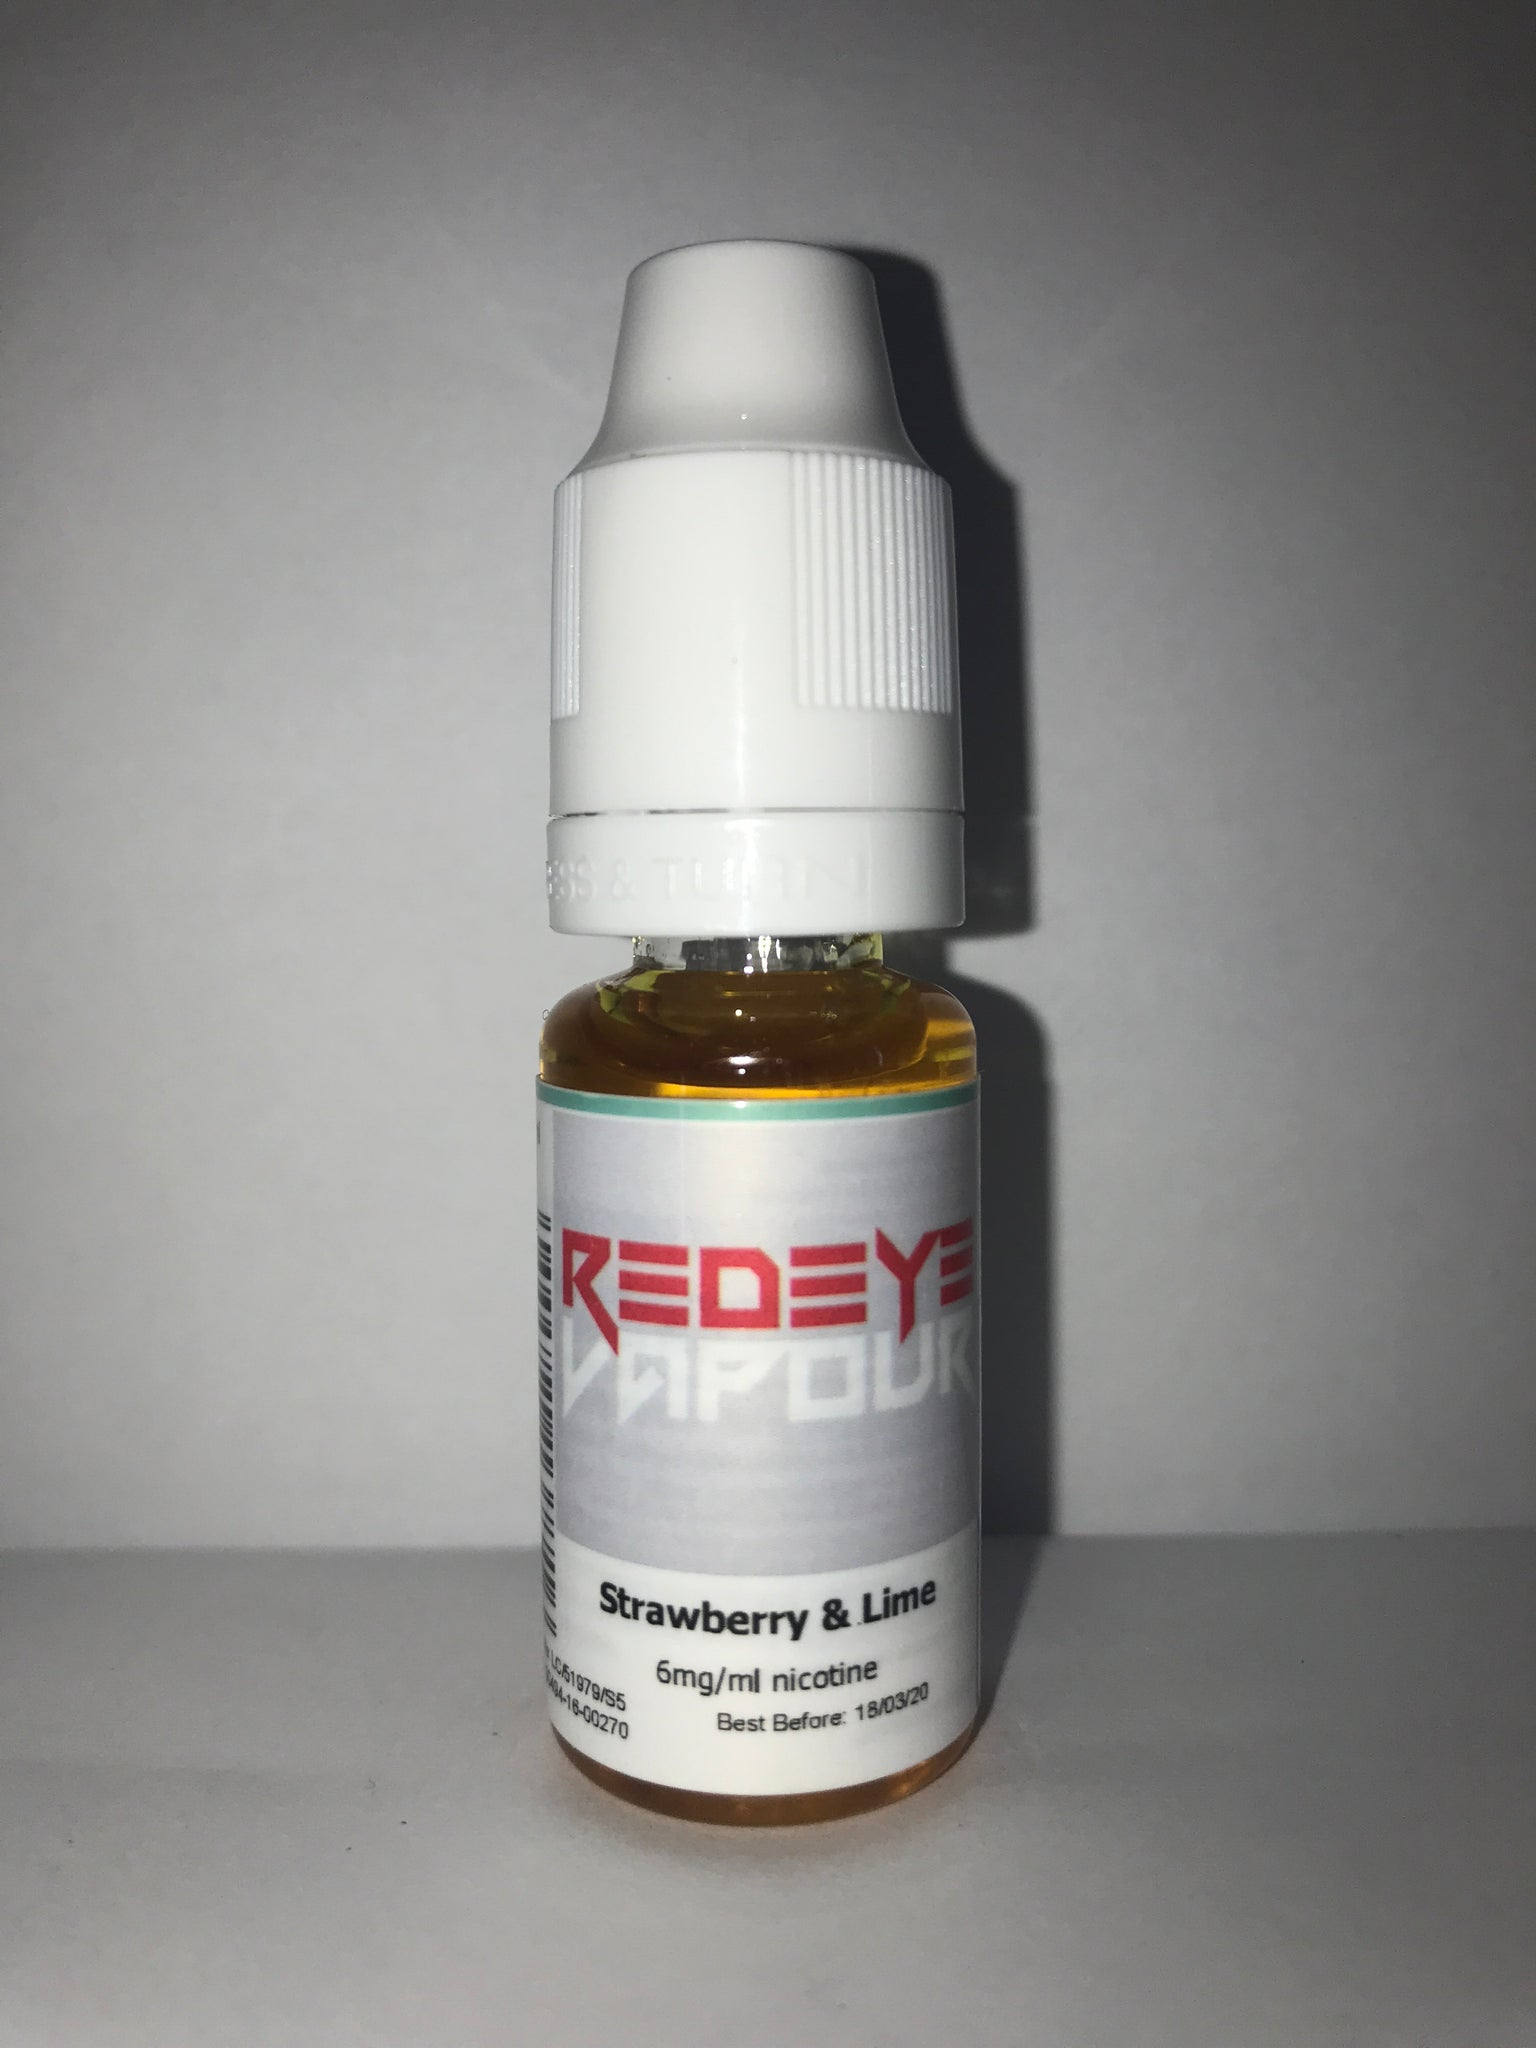 STRAWBERRY & LIME 50/50 E-LIQUID 10ML BY REDEYE VAPOUR